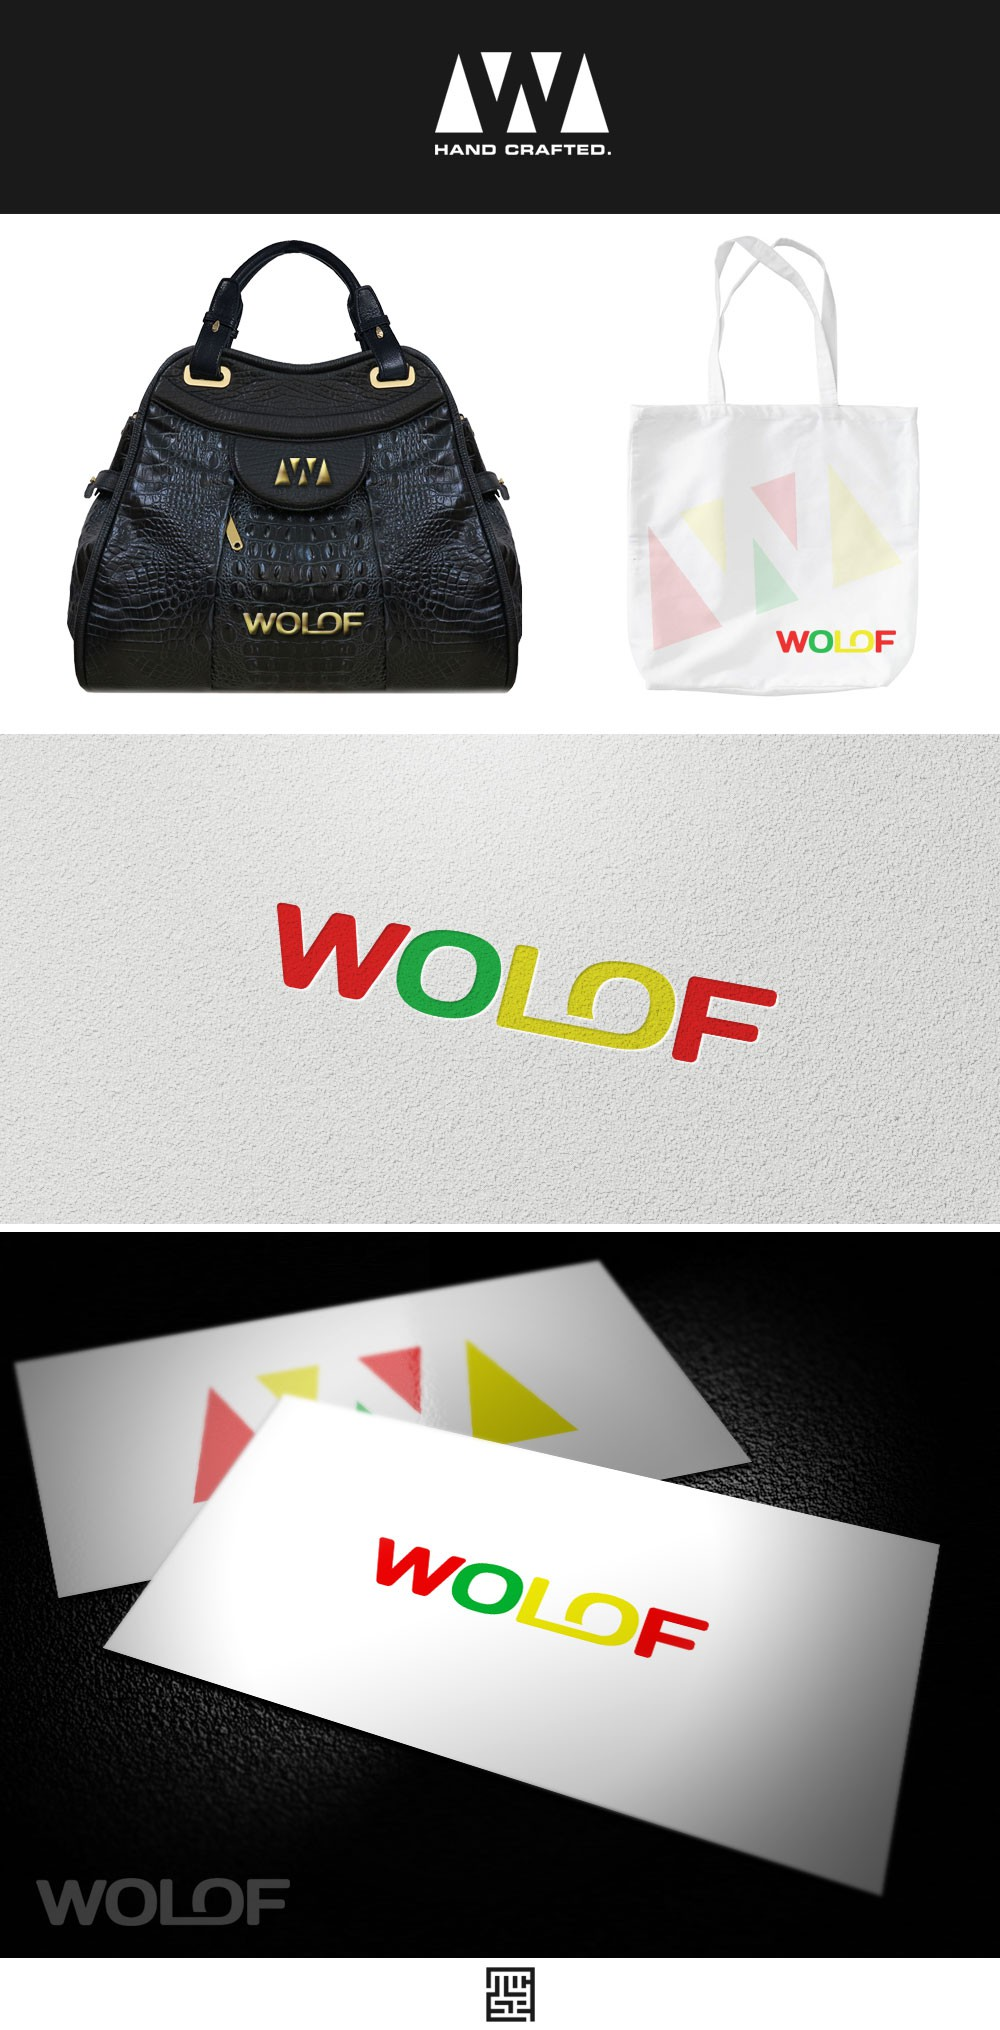 Exciting new project: A logo that is modern&sleek but embodies handmade products